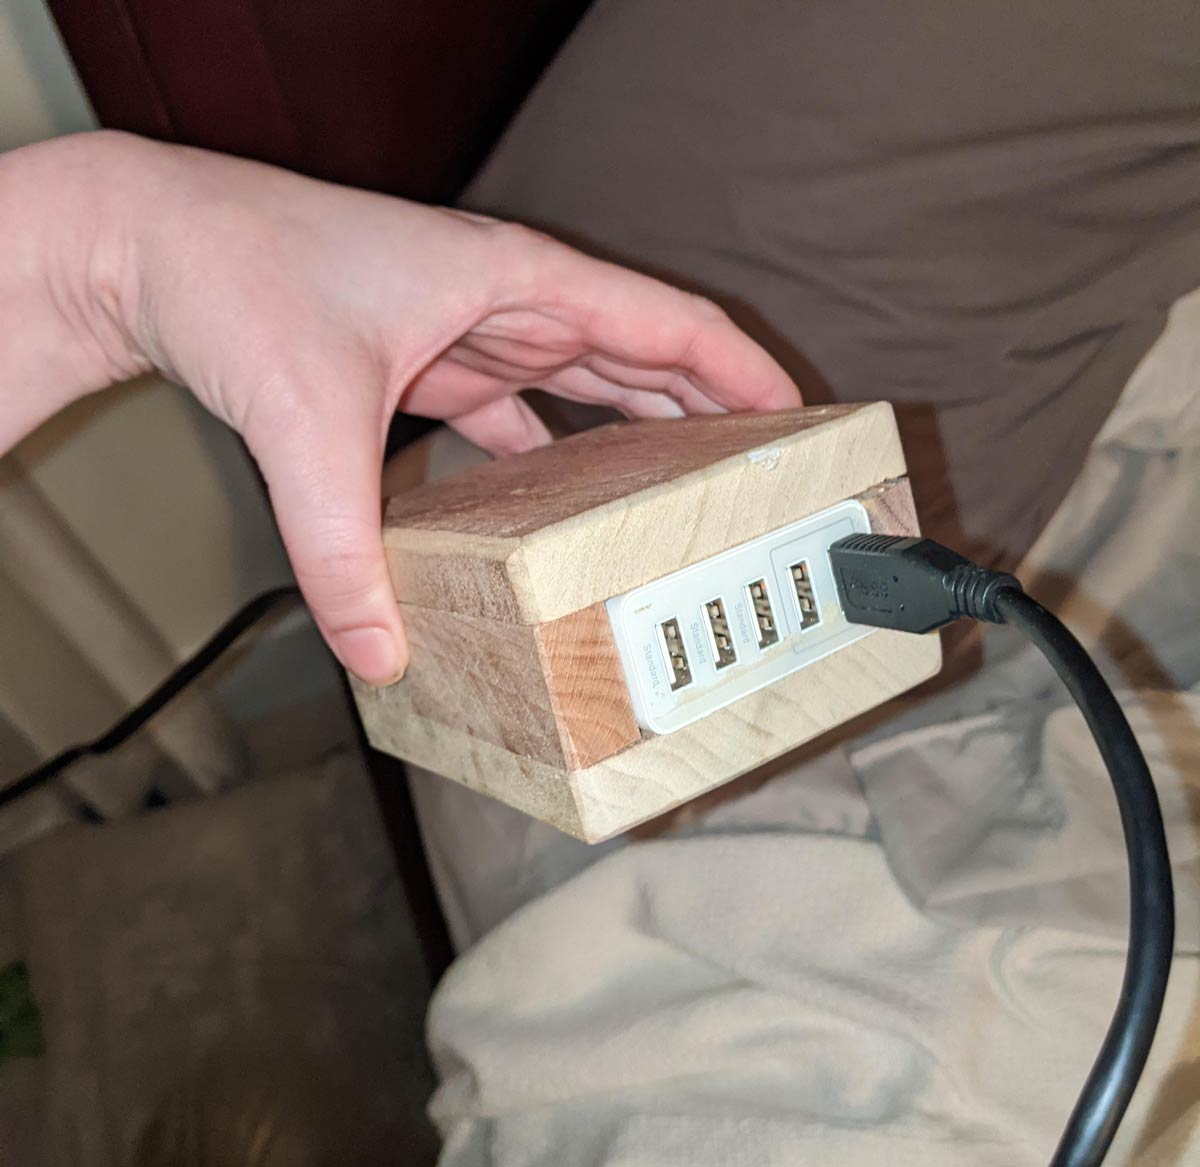 My dad spends his spare time building wooden boxes for charging ports, but hey, if he's happy..